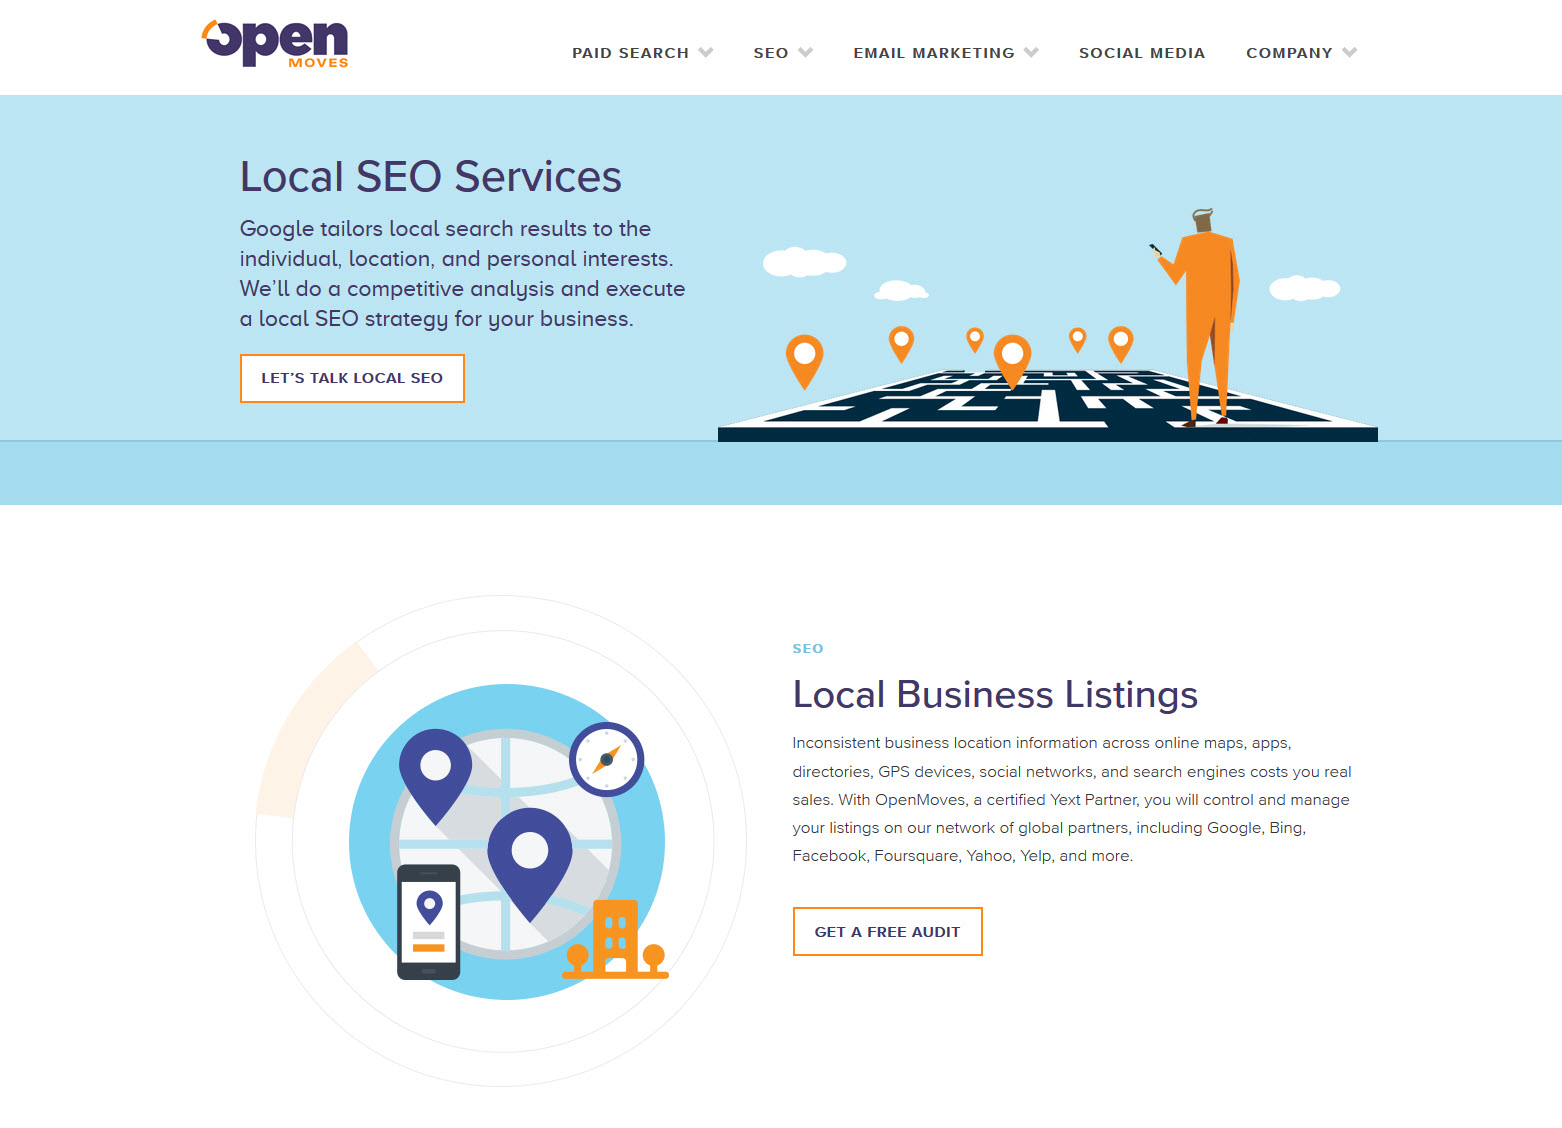 OpenMoves SEO & PPC Services Demo - OpenMoves+Local+SEO.jpg